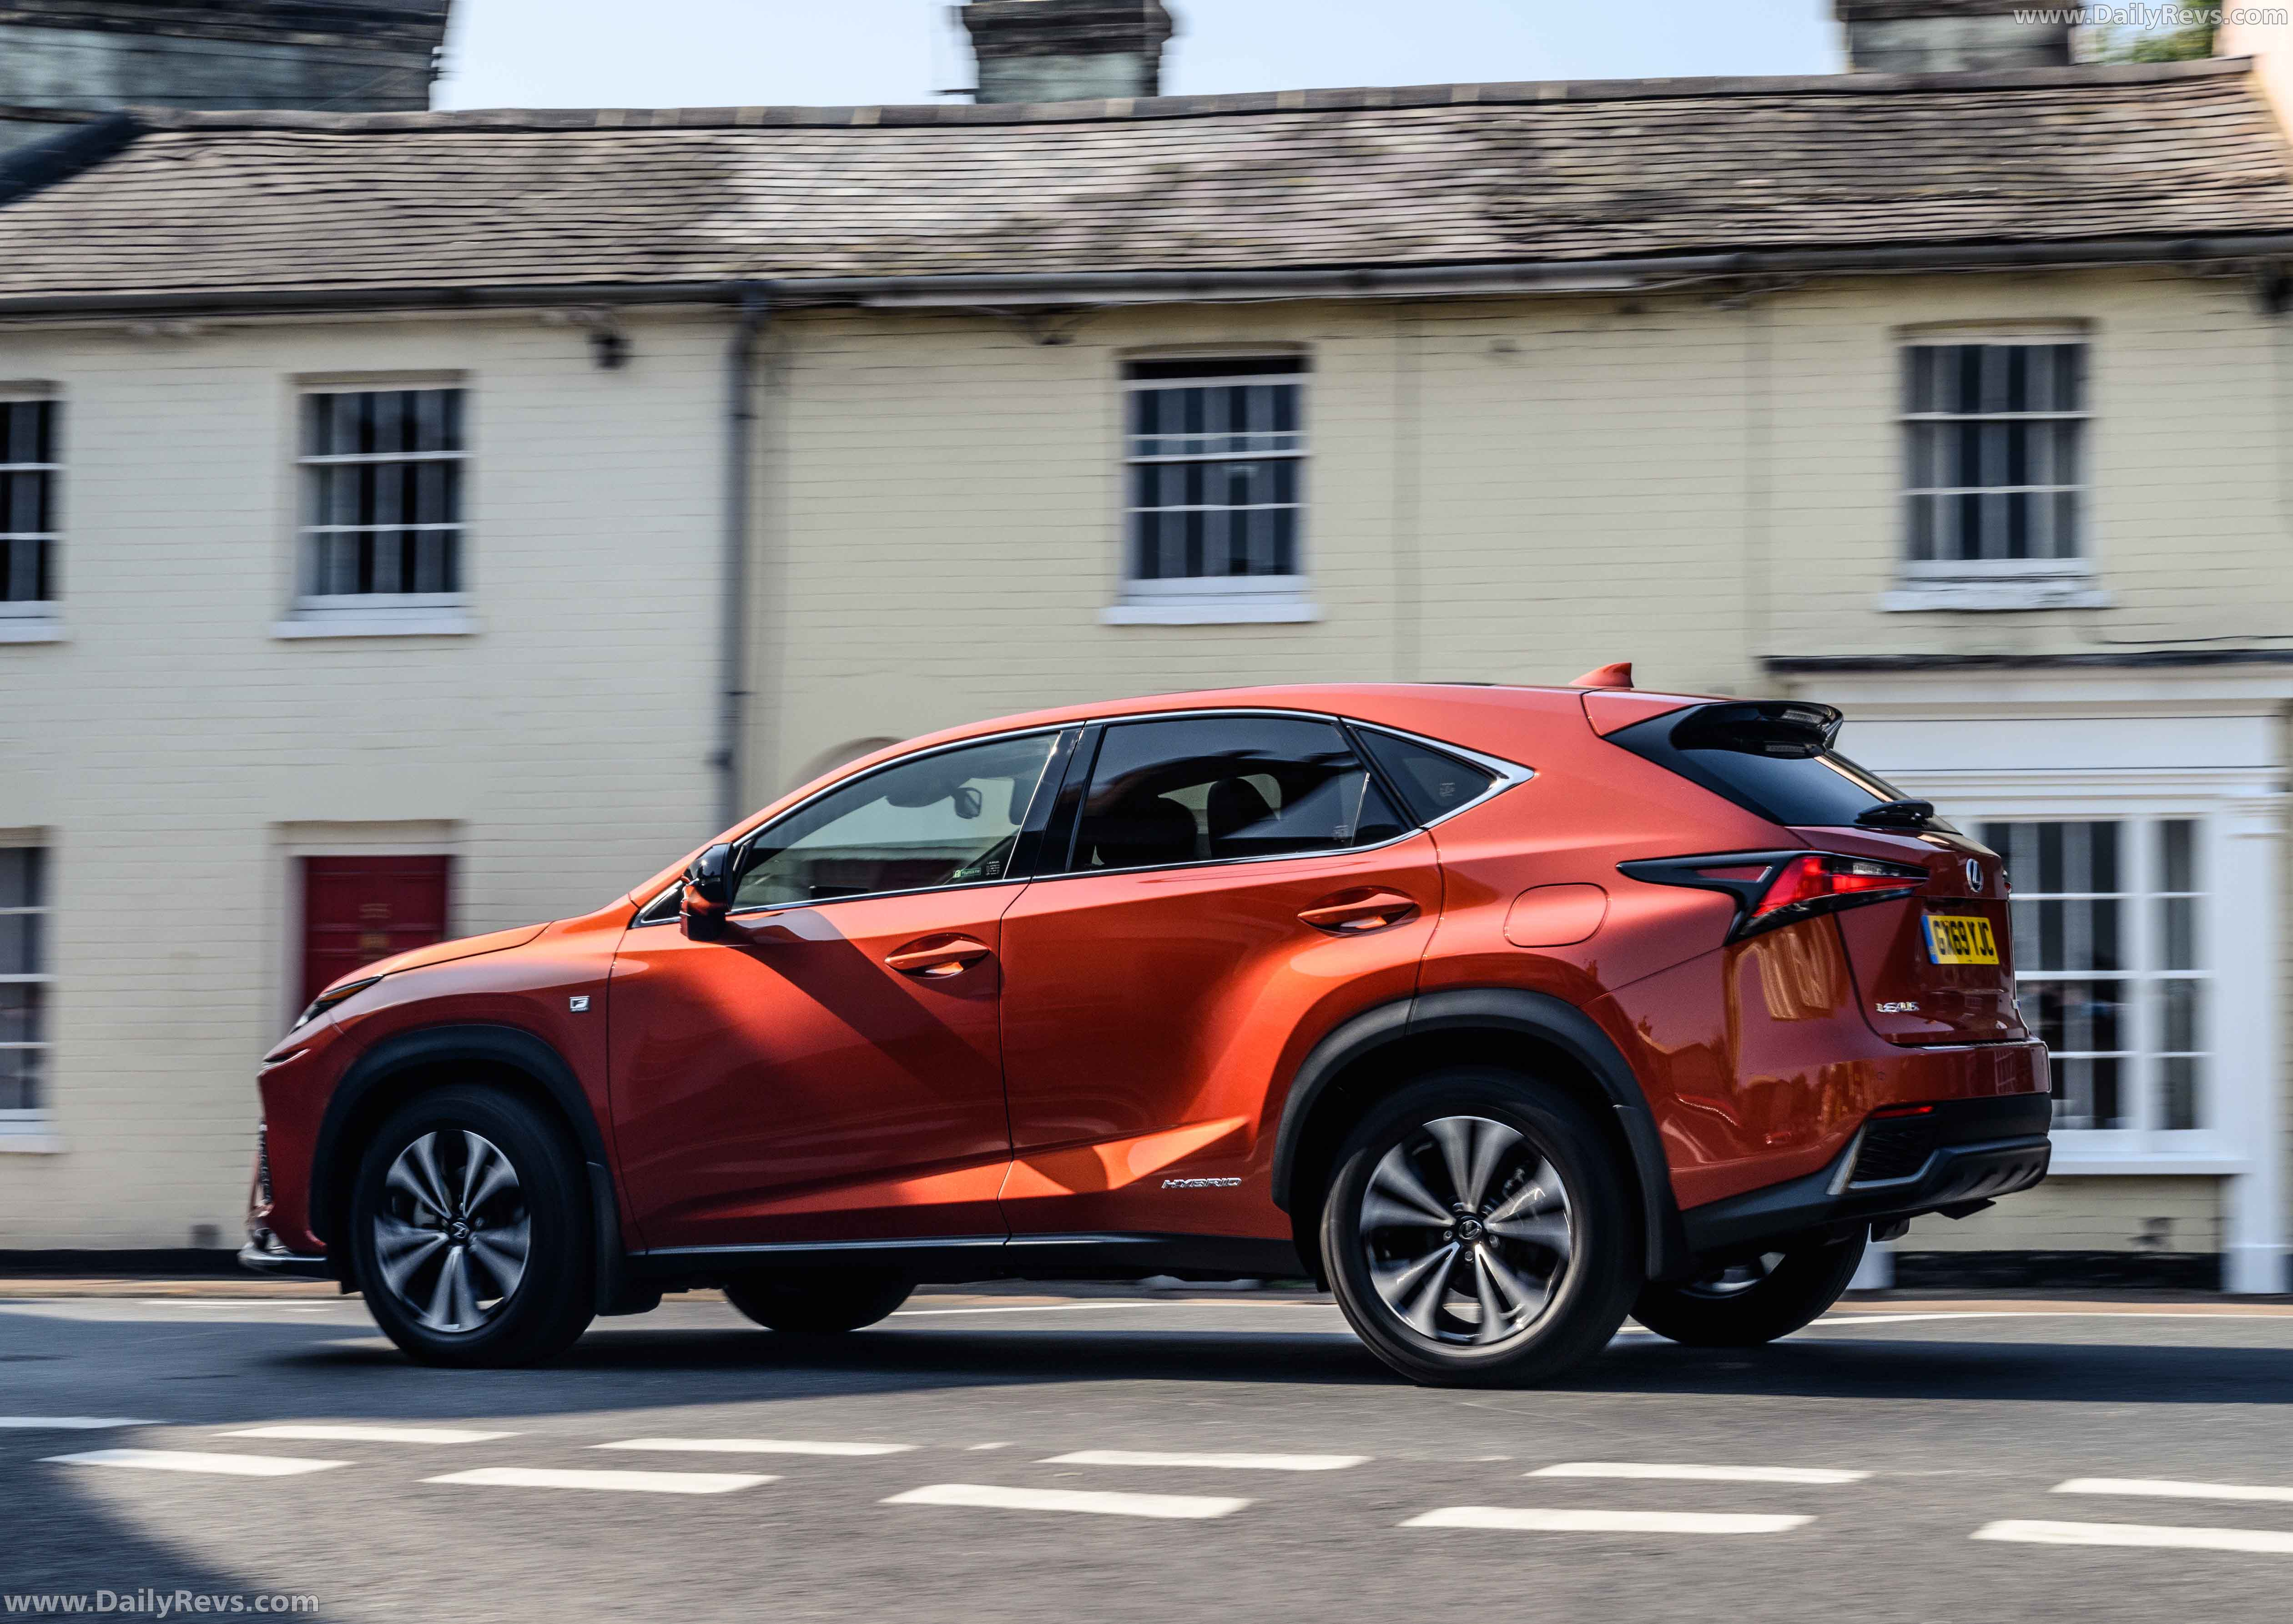 2020 lexus nx - uk version - dailyrevs